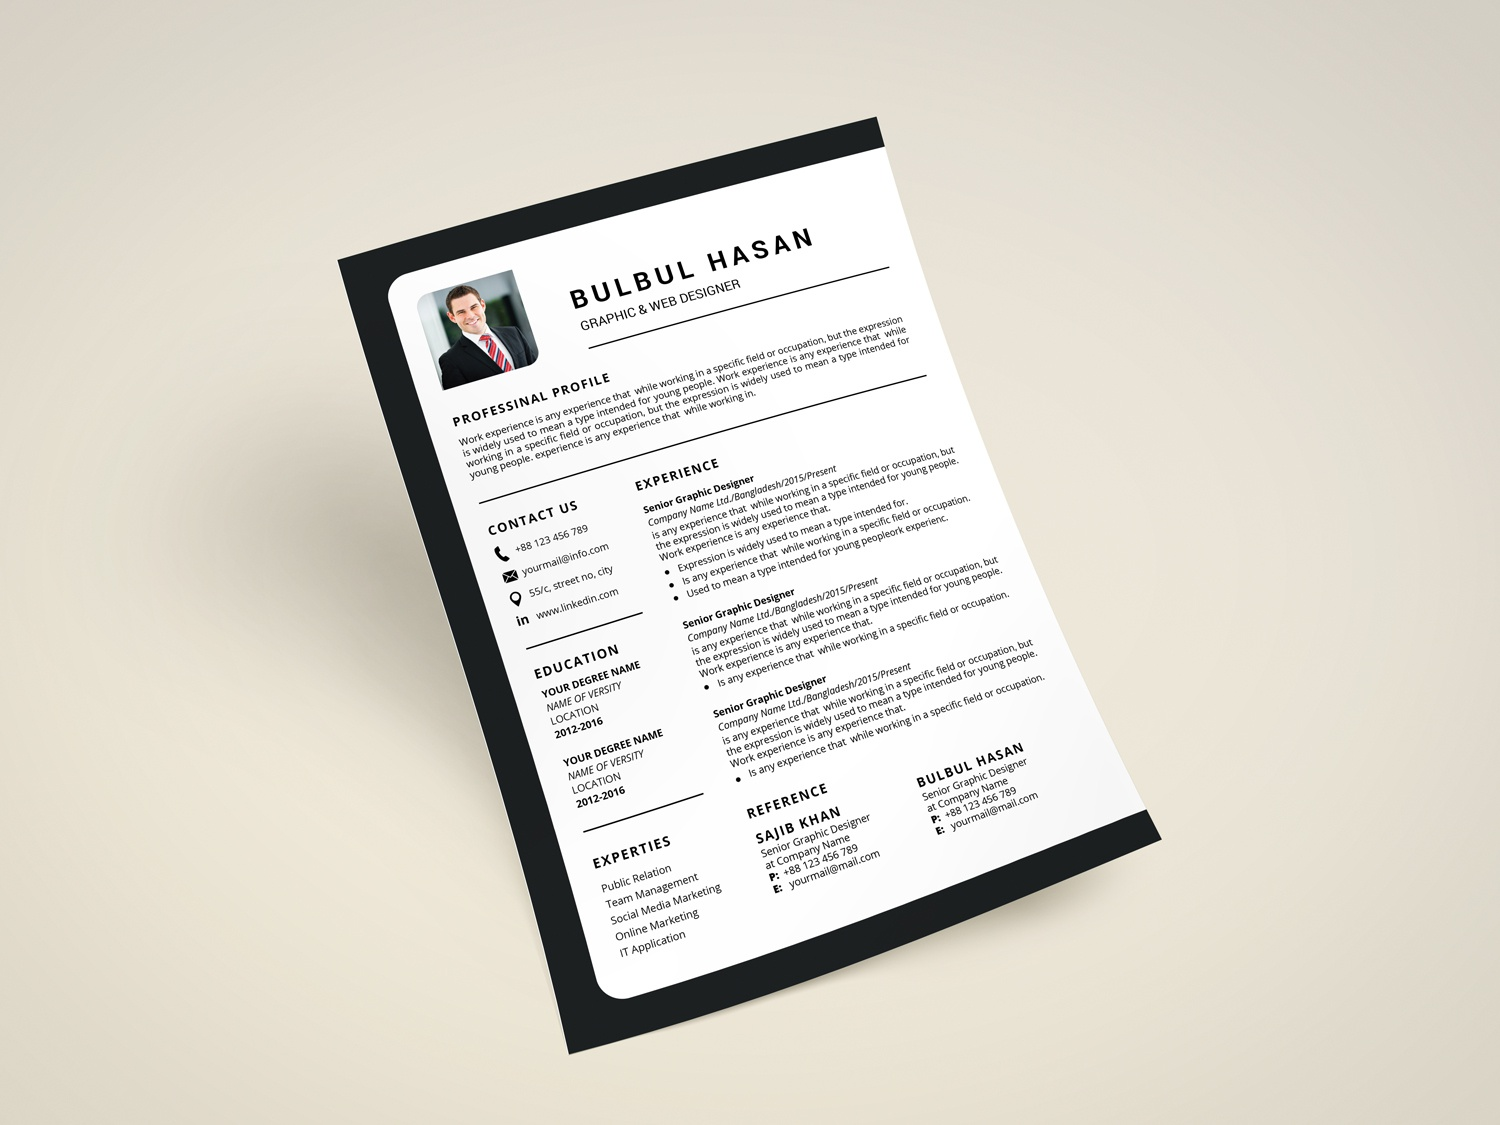 Resume design by Bulbul Hasan on Dribbble